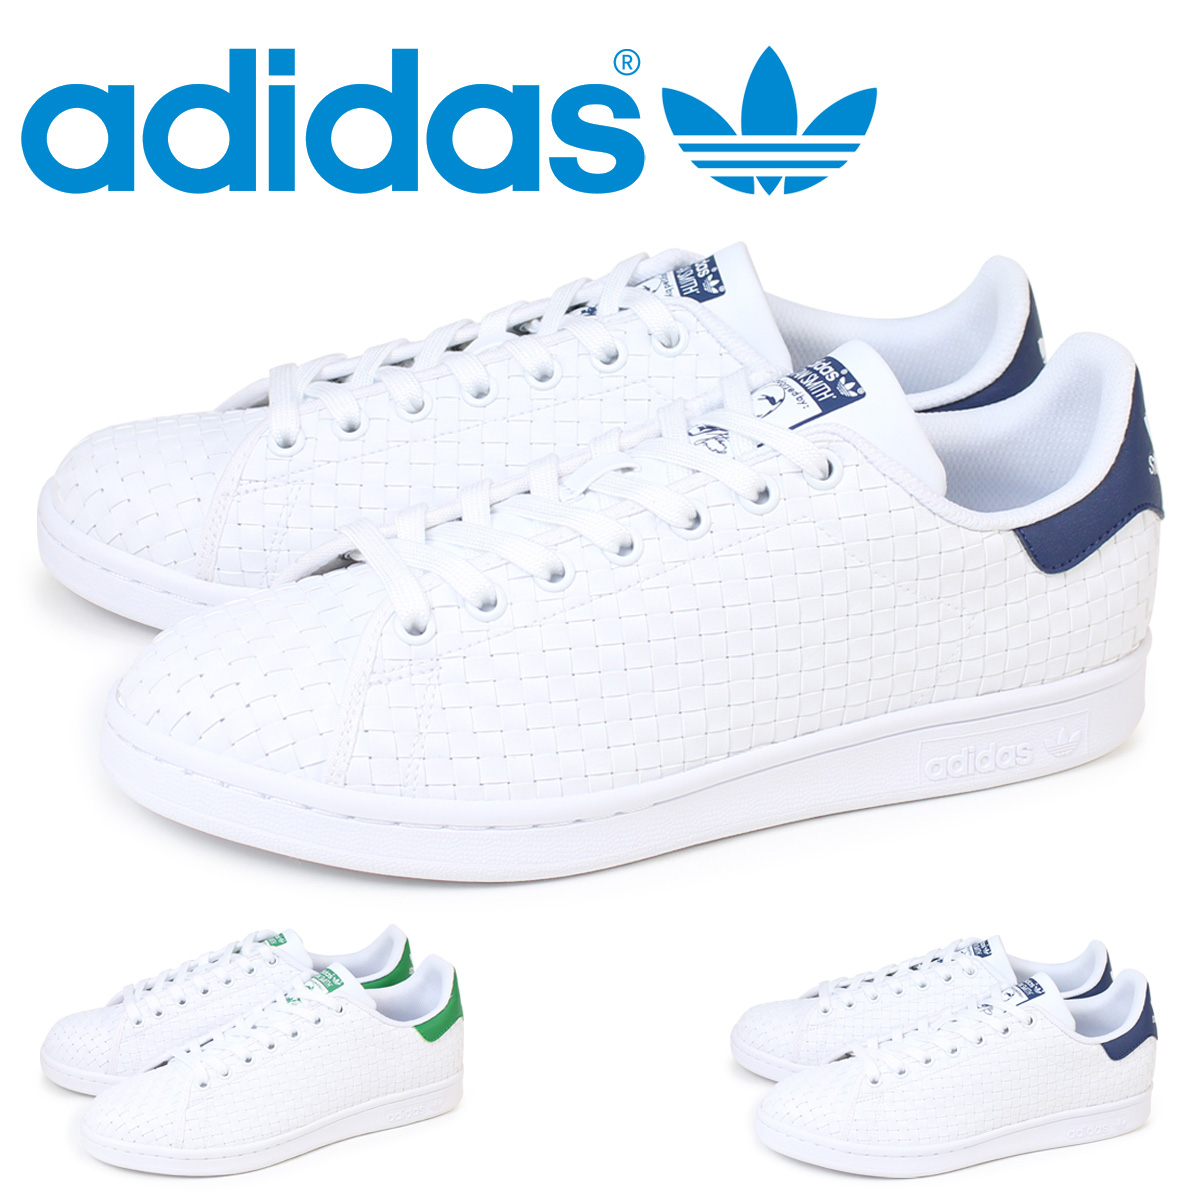 best service 2bcc5 9e399 adidas Stan Smith Adidas Originals sneakers STAN SMITH men BB0051 BB1468  shoes white white